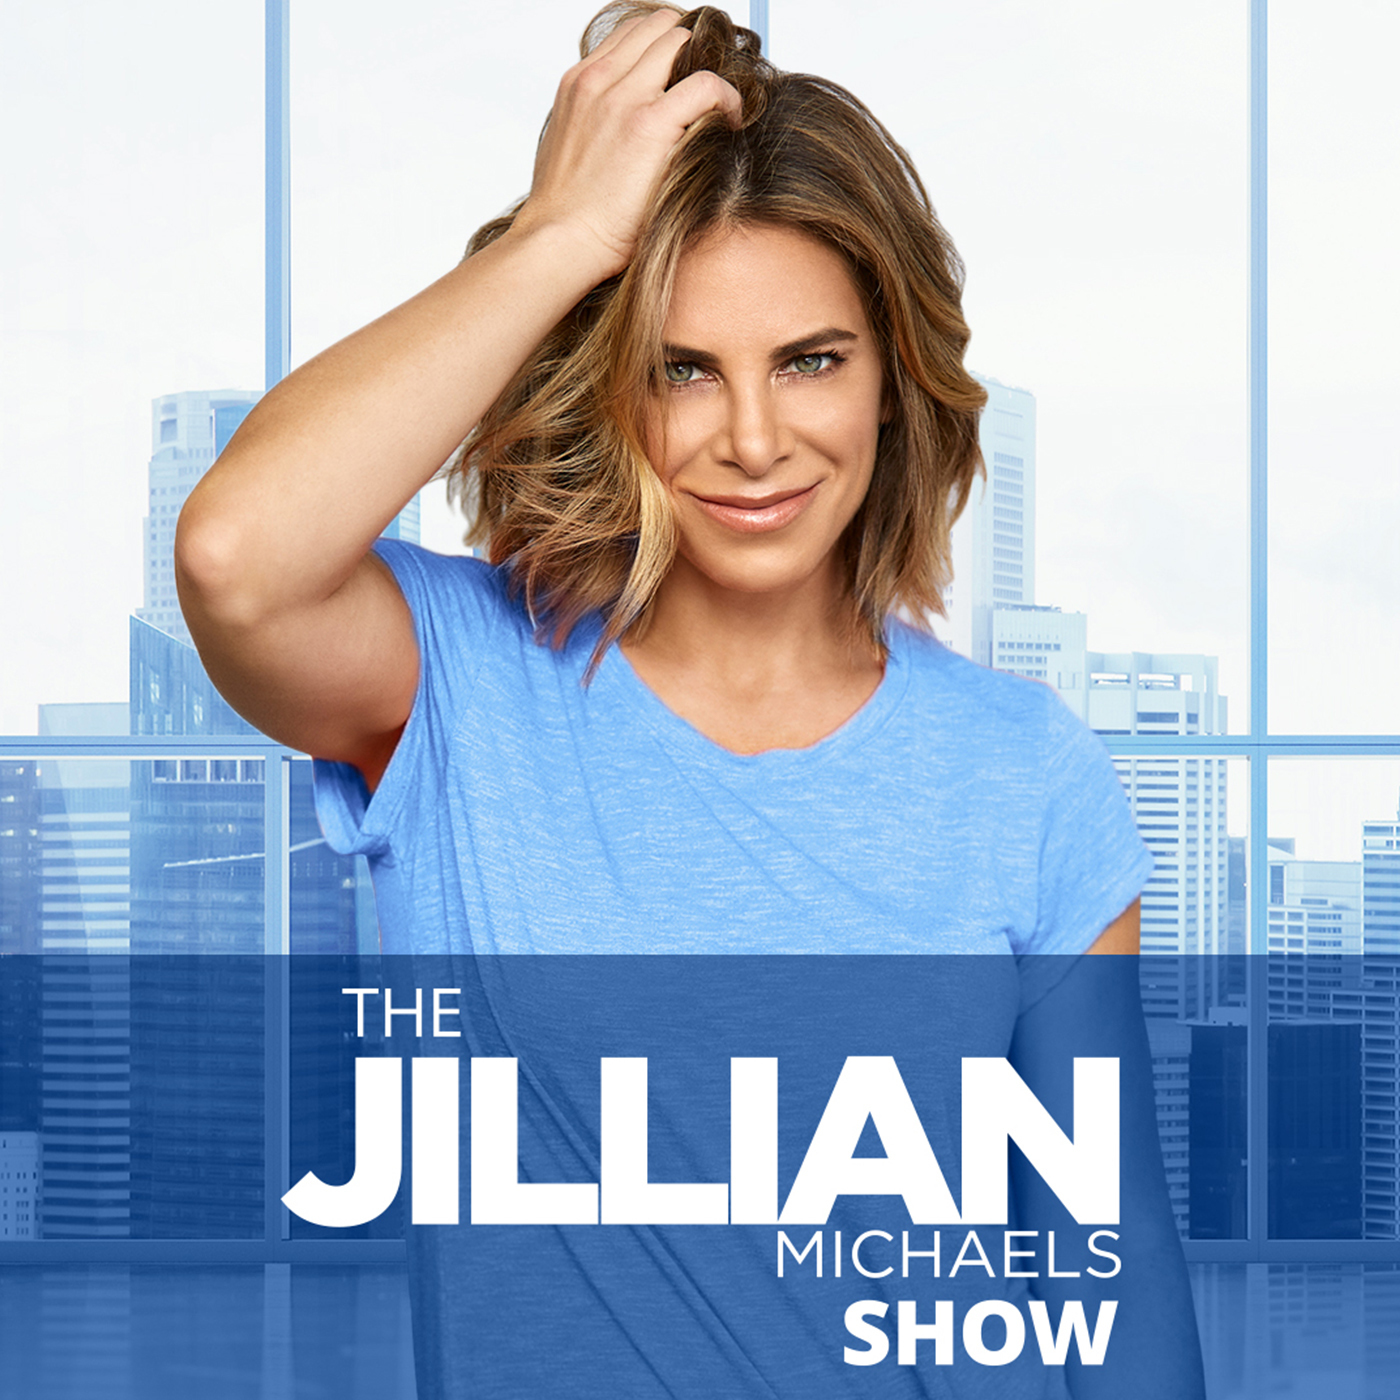 ICloud Jillian Michaels nudes (81 foto and video), Tits, Is a cute, Twitter, cleavage 2015